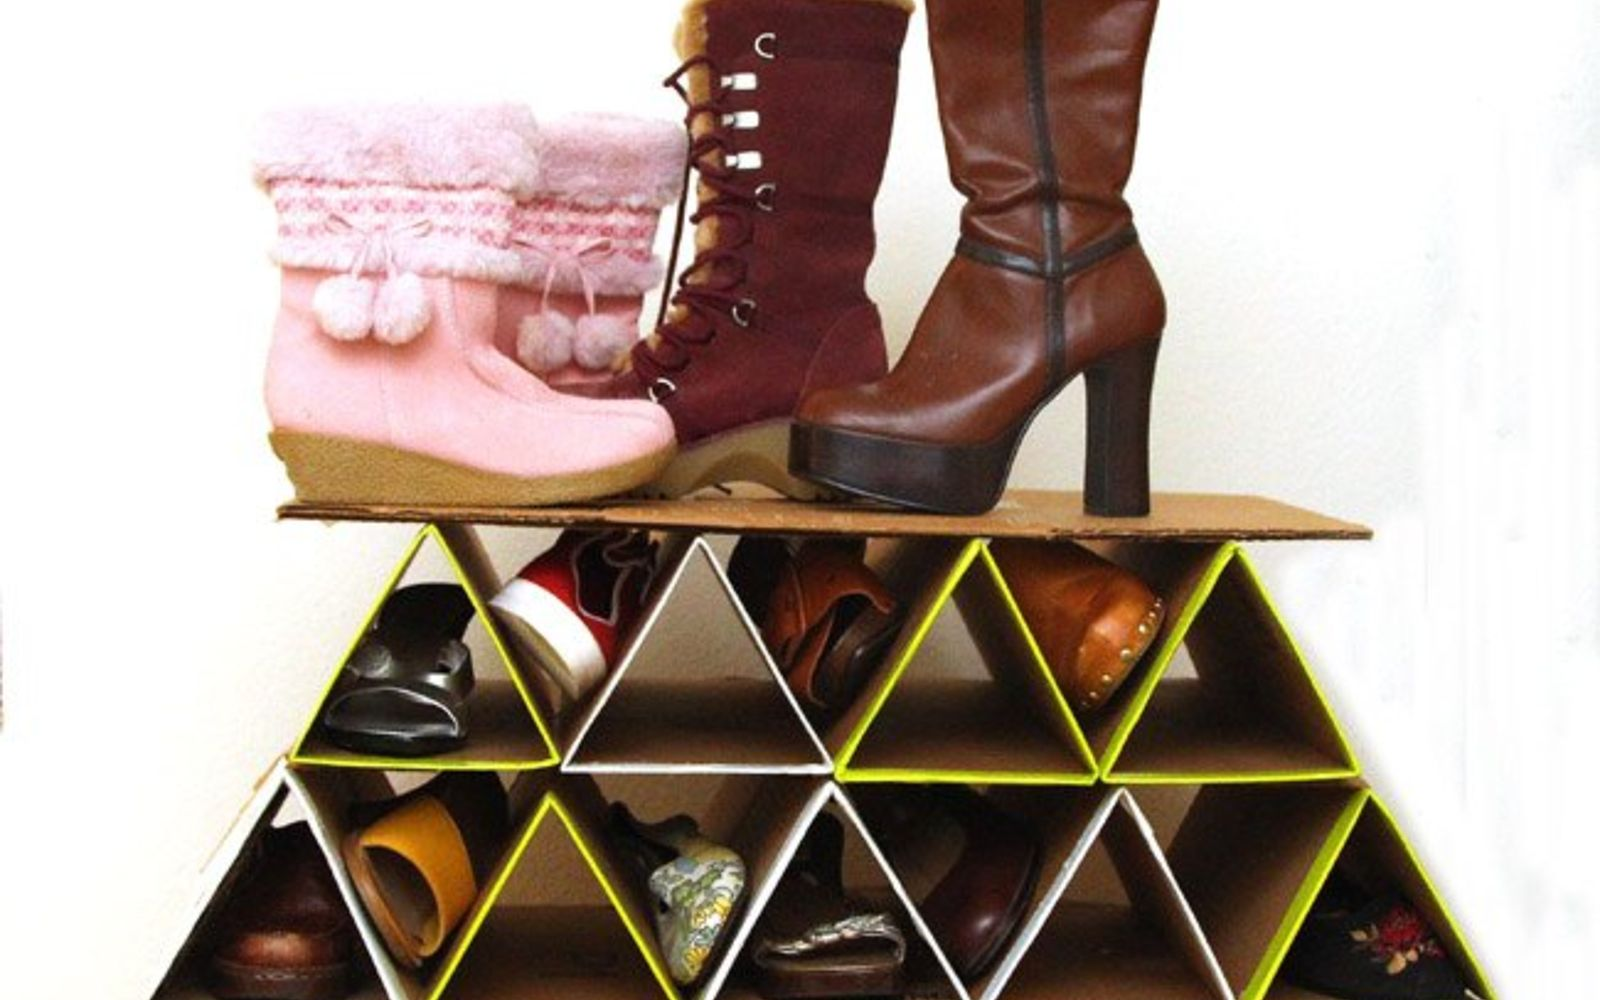 s pamper your guests without spending money 13 ideas , home decor, Build some quick temporary shoe storage